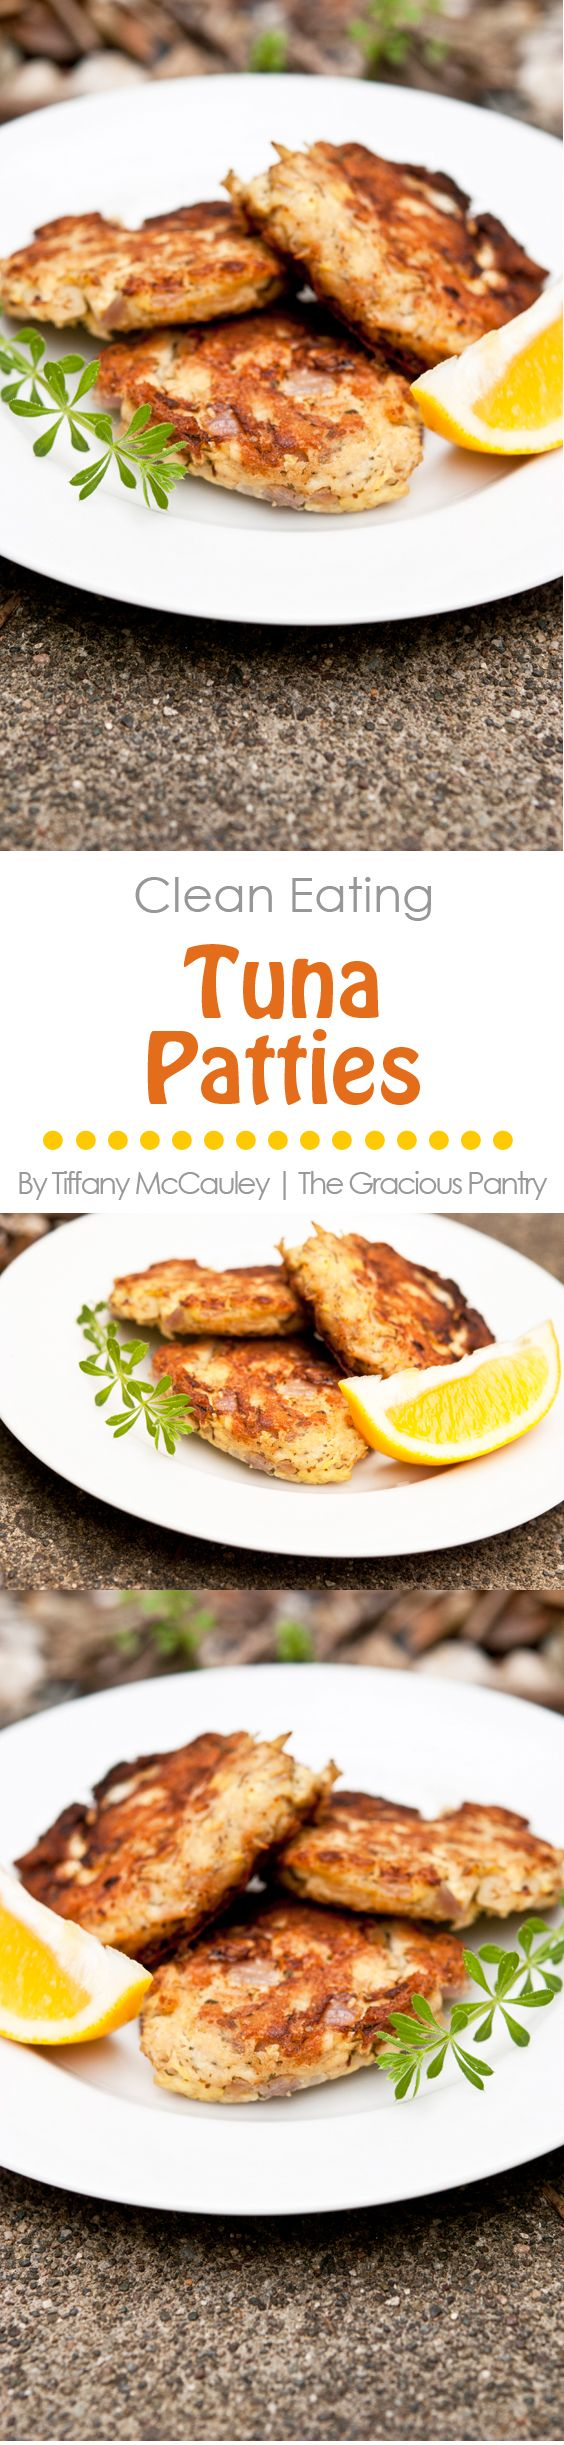 Clean Eating Tuna Patties. A simple, healthy, clean and delicious way to enjoy tuna, and everyone will love it! ~ https://www.thegraciouspantry.com